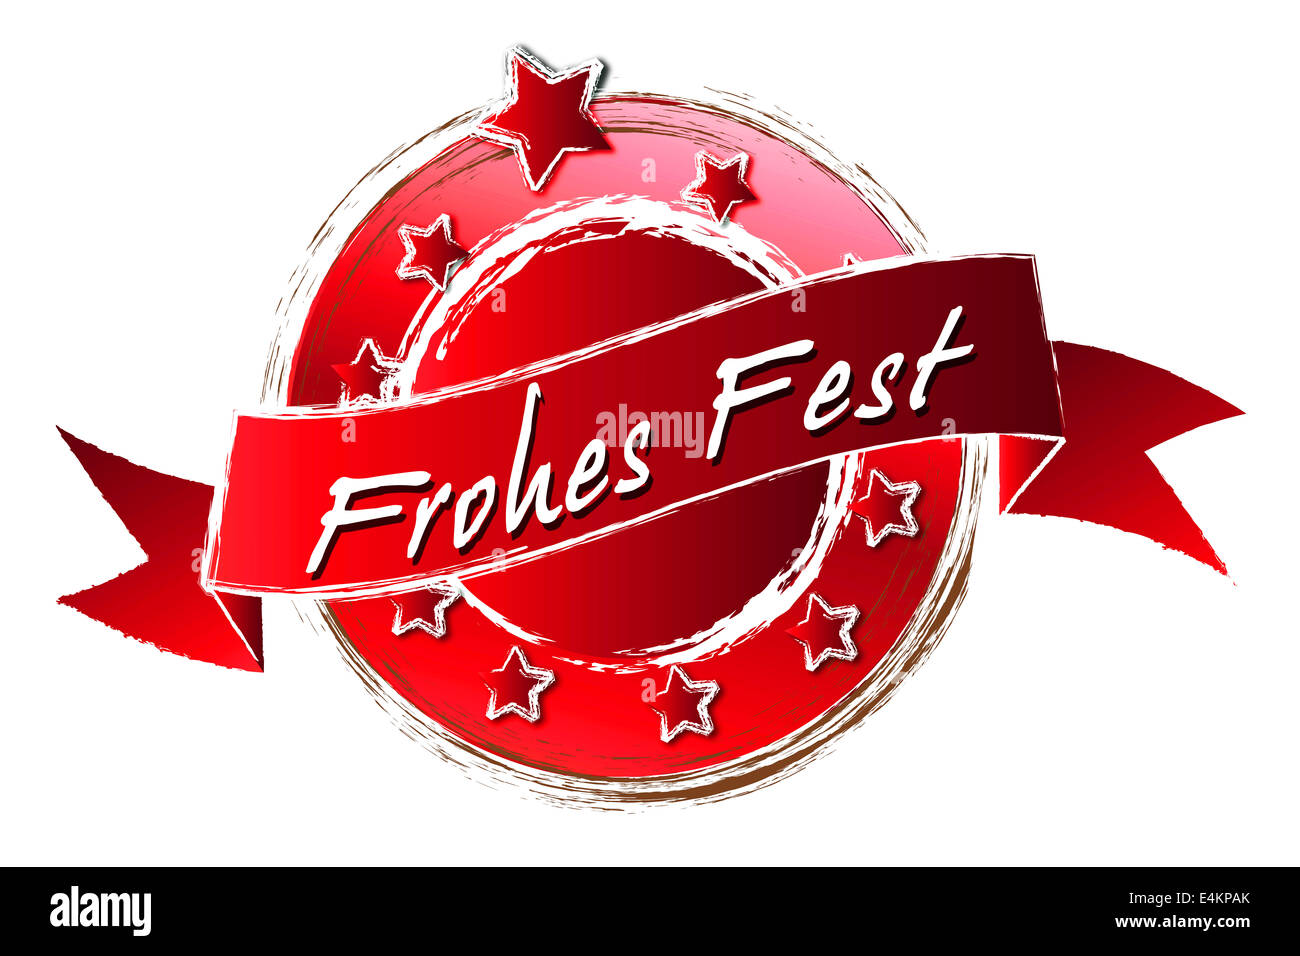 Royal Grunge - Frohes Fest - Stock Image